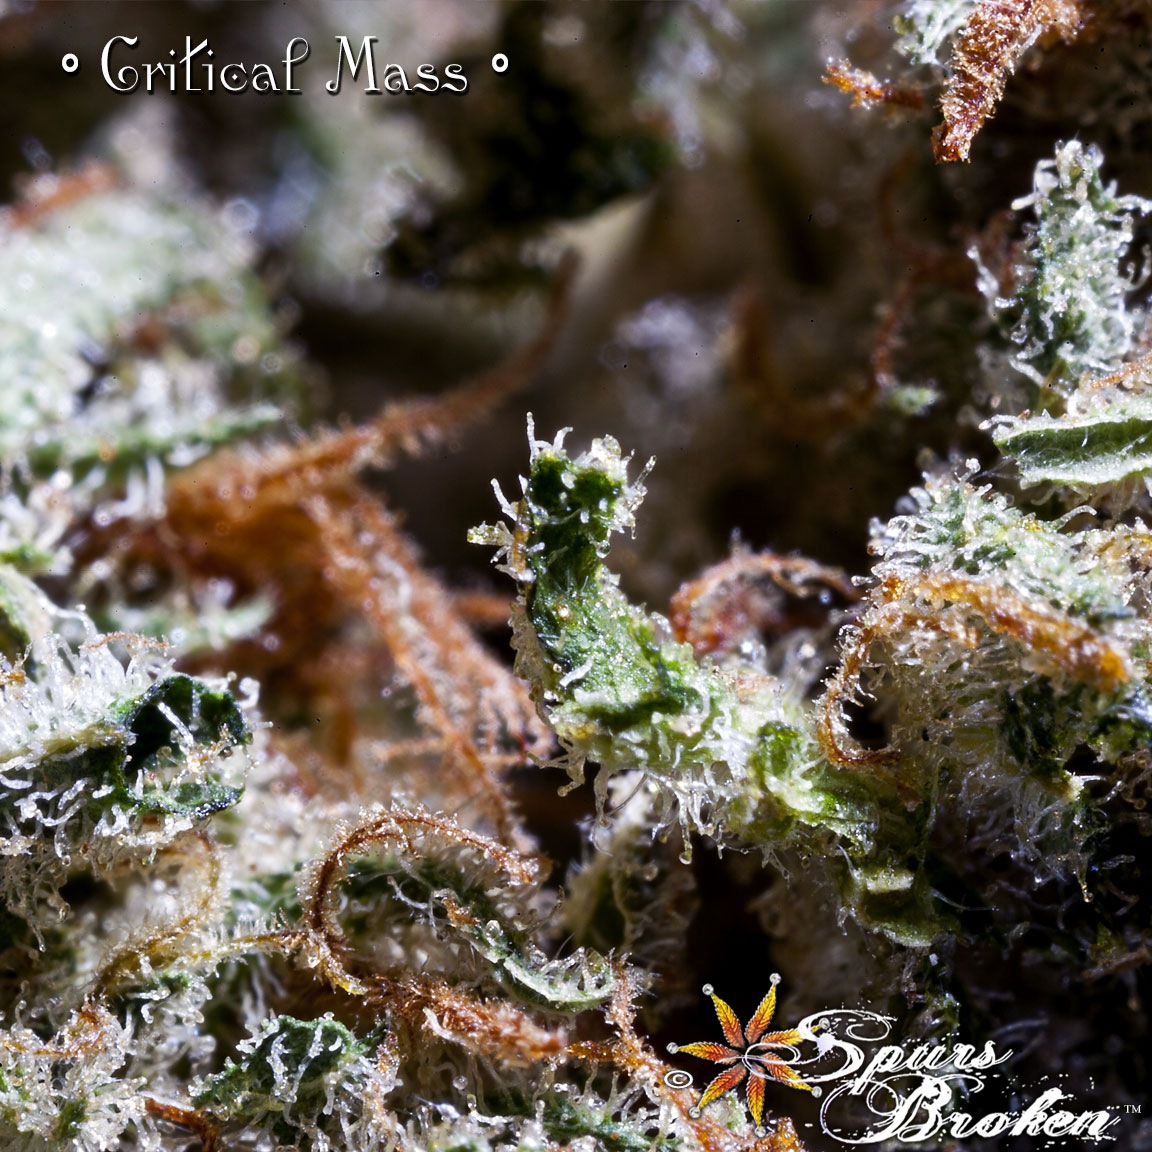 Critical Mass - Cannabis Macro Photography by Spurs Broken (Robert R. Sanders)